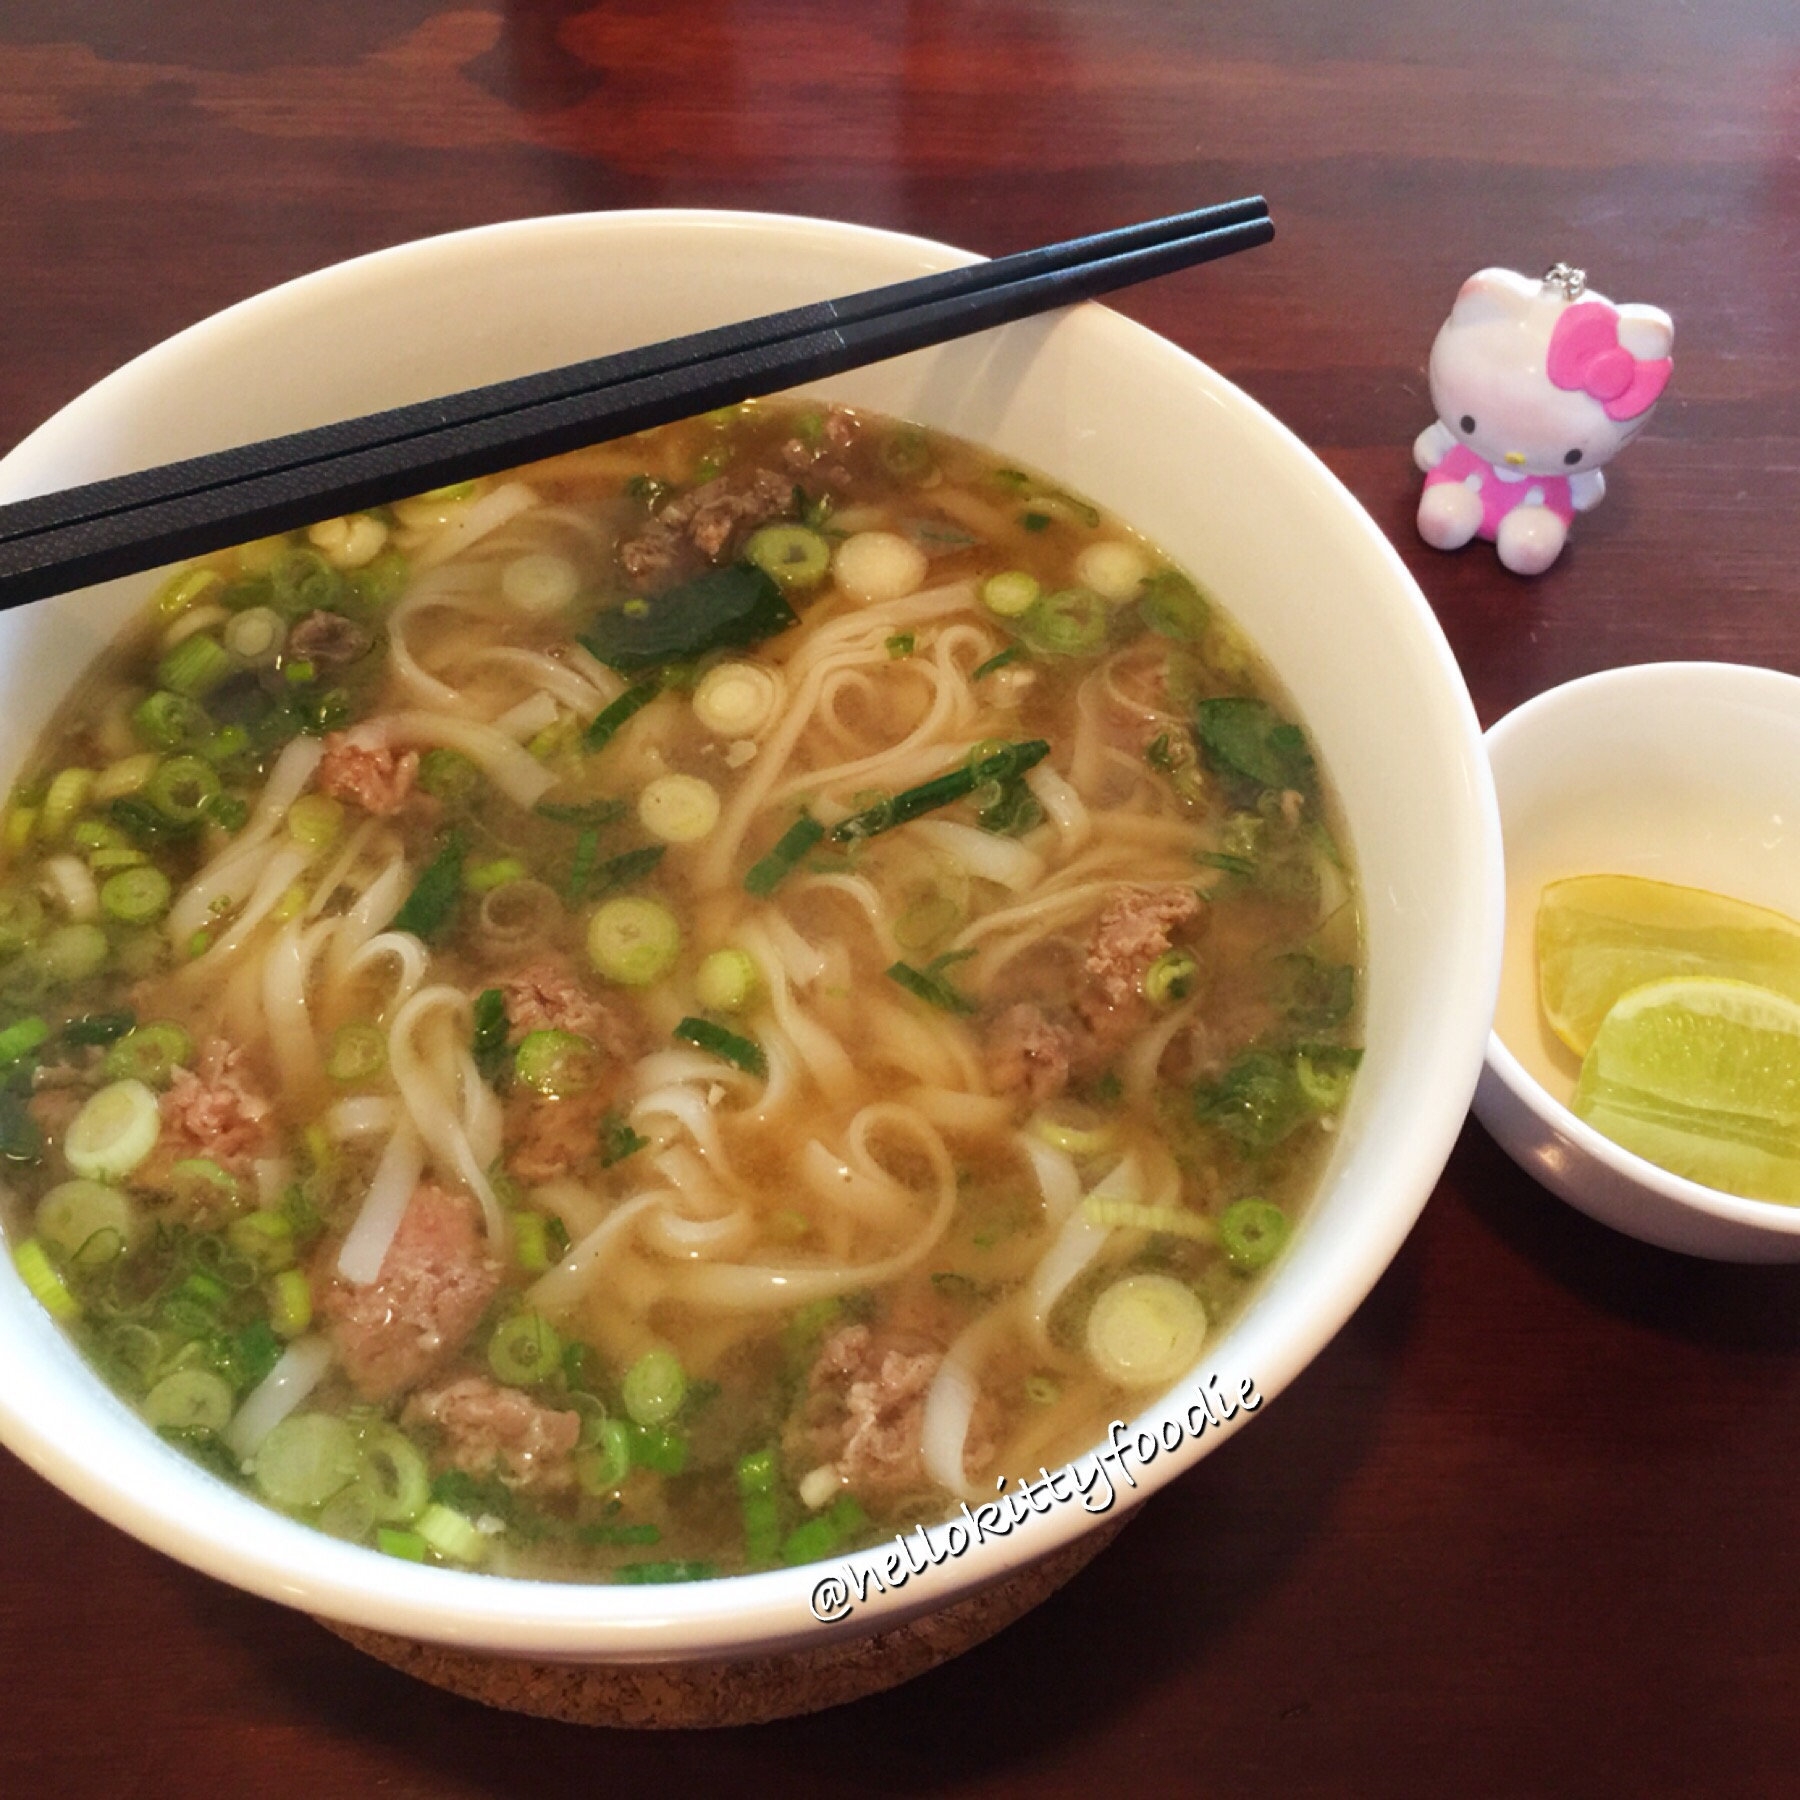 ... very interesting because unlike pho served at other restaurants, there were no bean sprouts served with it. According to the server, this is how pho is ...